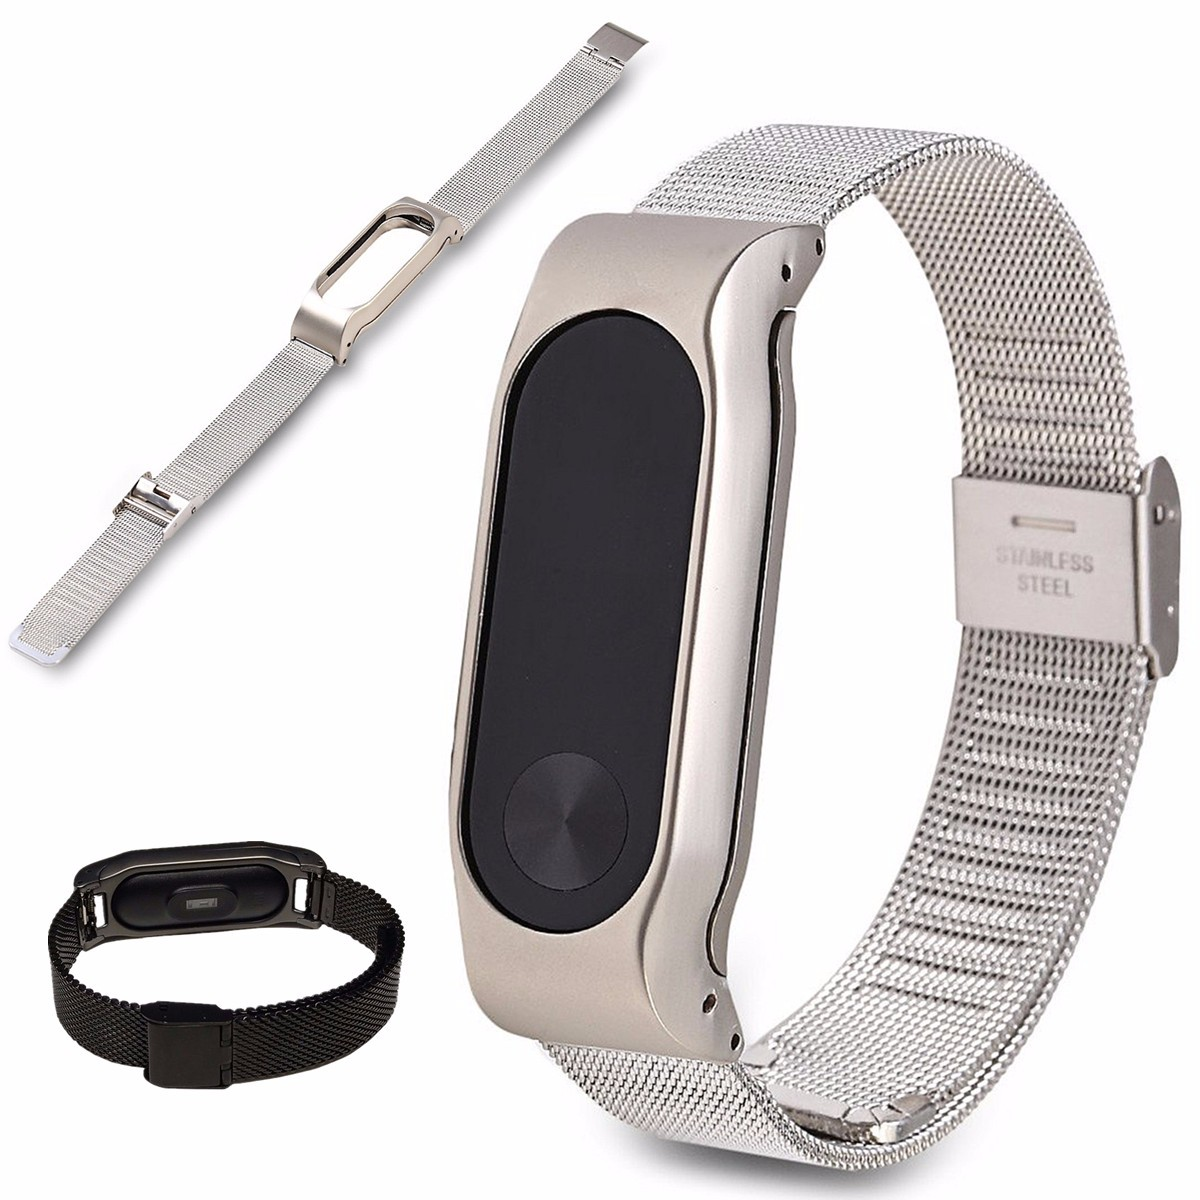 Replacement Stainless Steel Frame Bracelet Wristband For Xiaomi Mi Band 2 4e28bb81 Dc6d 47be A5de F307fe20cb6b